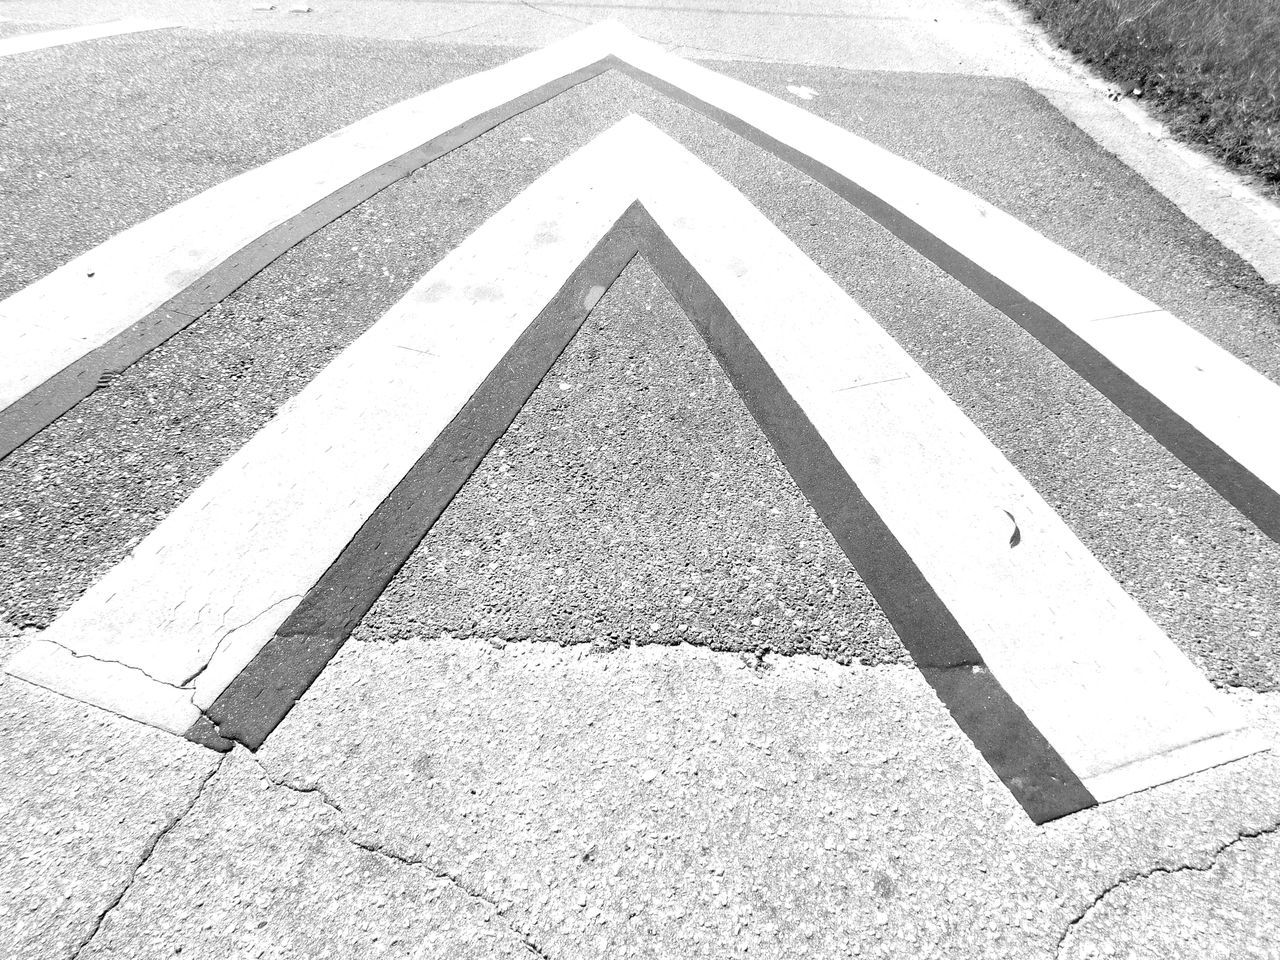 Monochrome Photography Streetphotography Urban Geometry On The Road Notes From The Underground Random Acts Of Photography Urban Exploration Shapes And Lines Outdoors Shapes , Lines , Forms & Composition Lines And Shapes Lines And Angles Blackandwhite Florida Street City Pattern Pieces